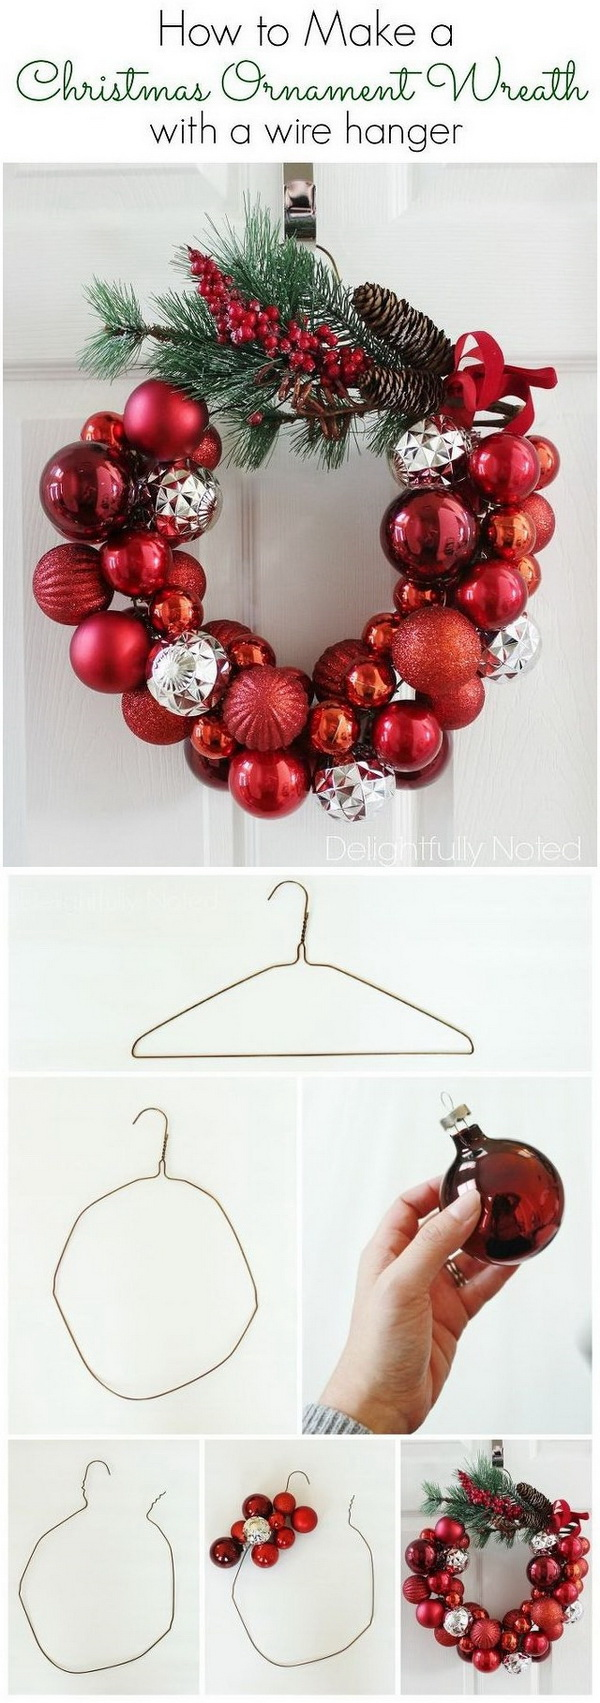 DIY Christmas decorations - easy and simple 36